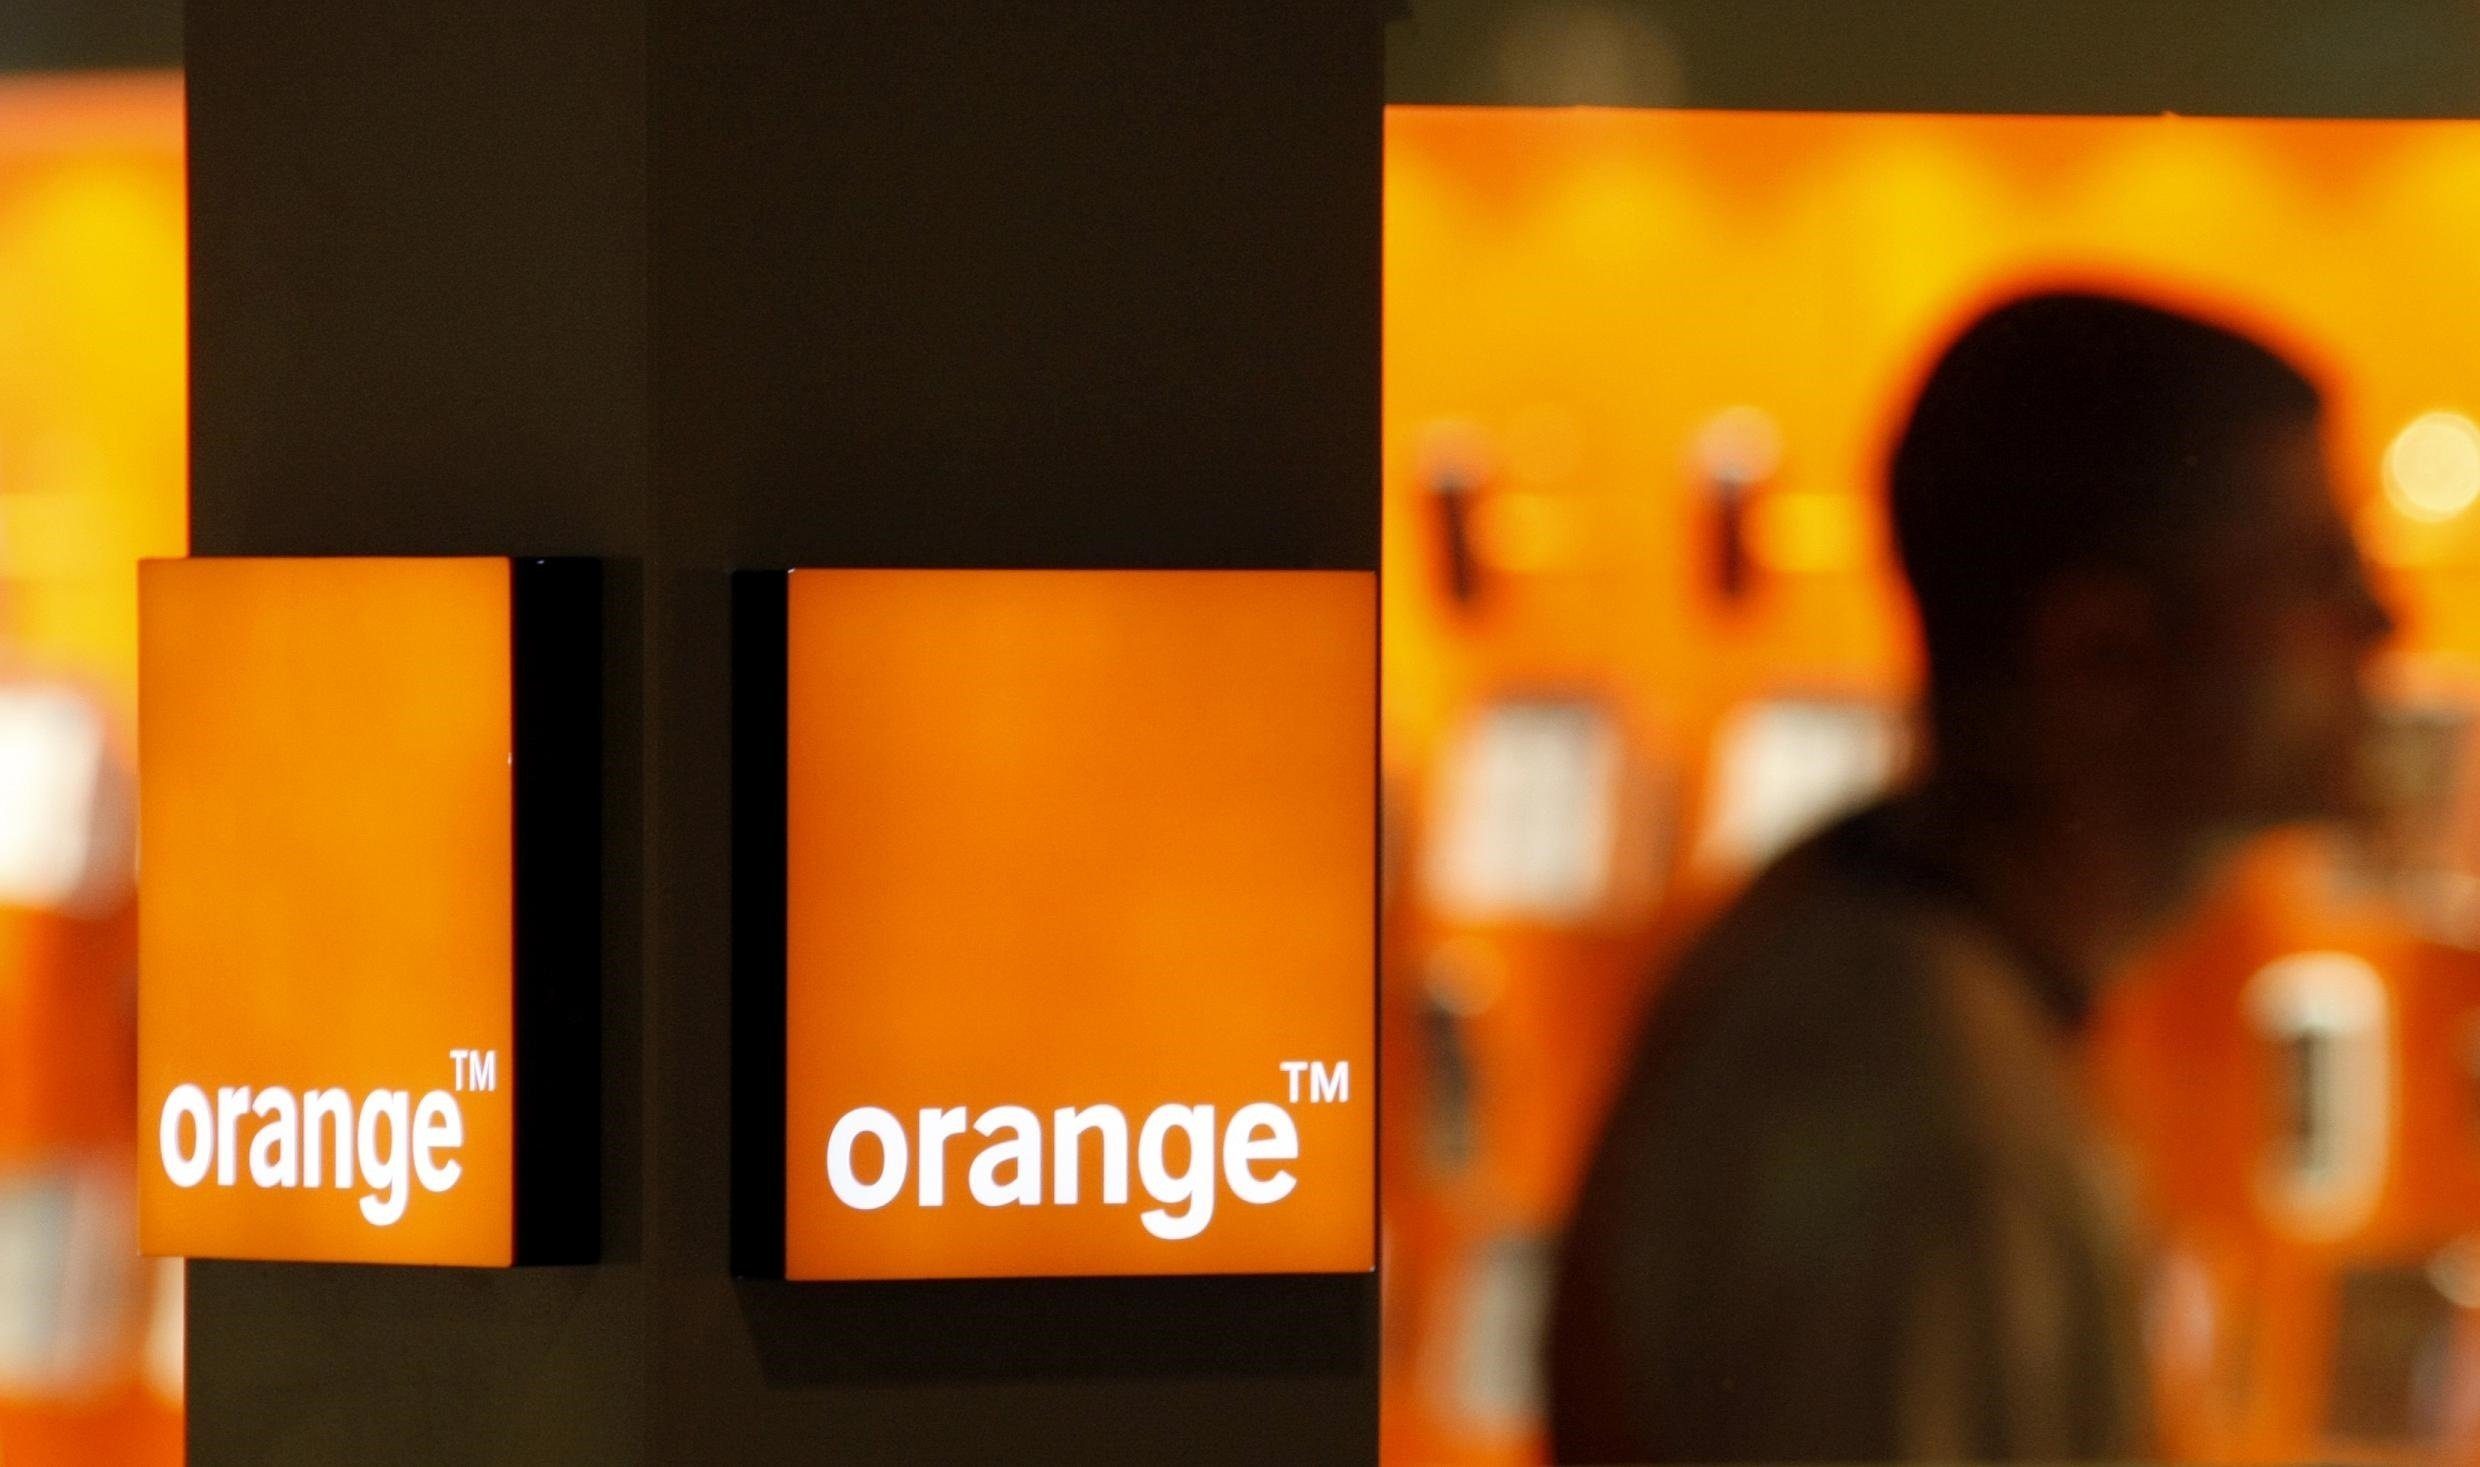 Orange et Sosh supportent enfin l'eSIM en France